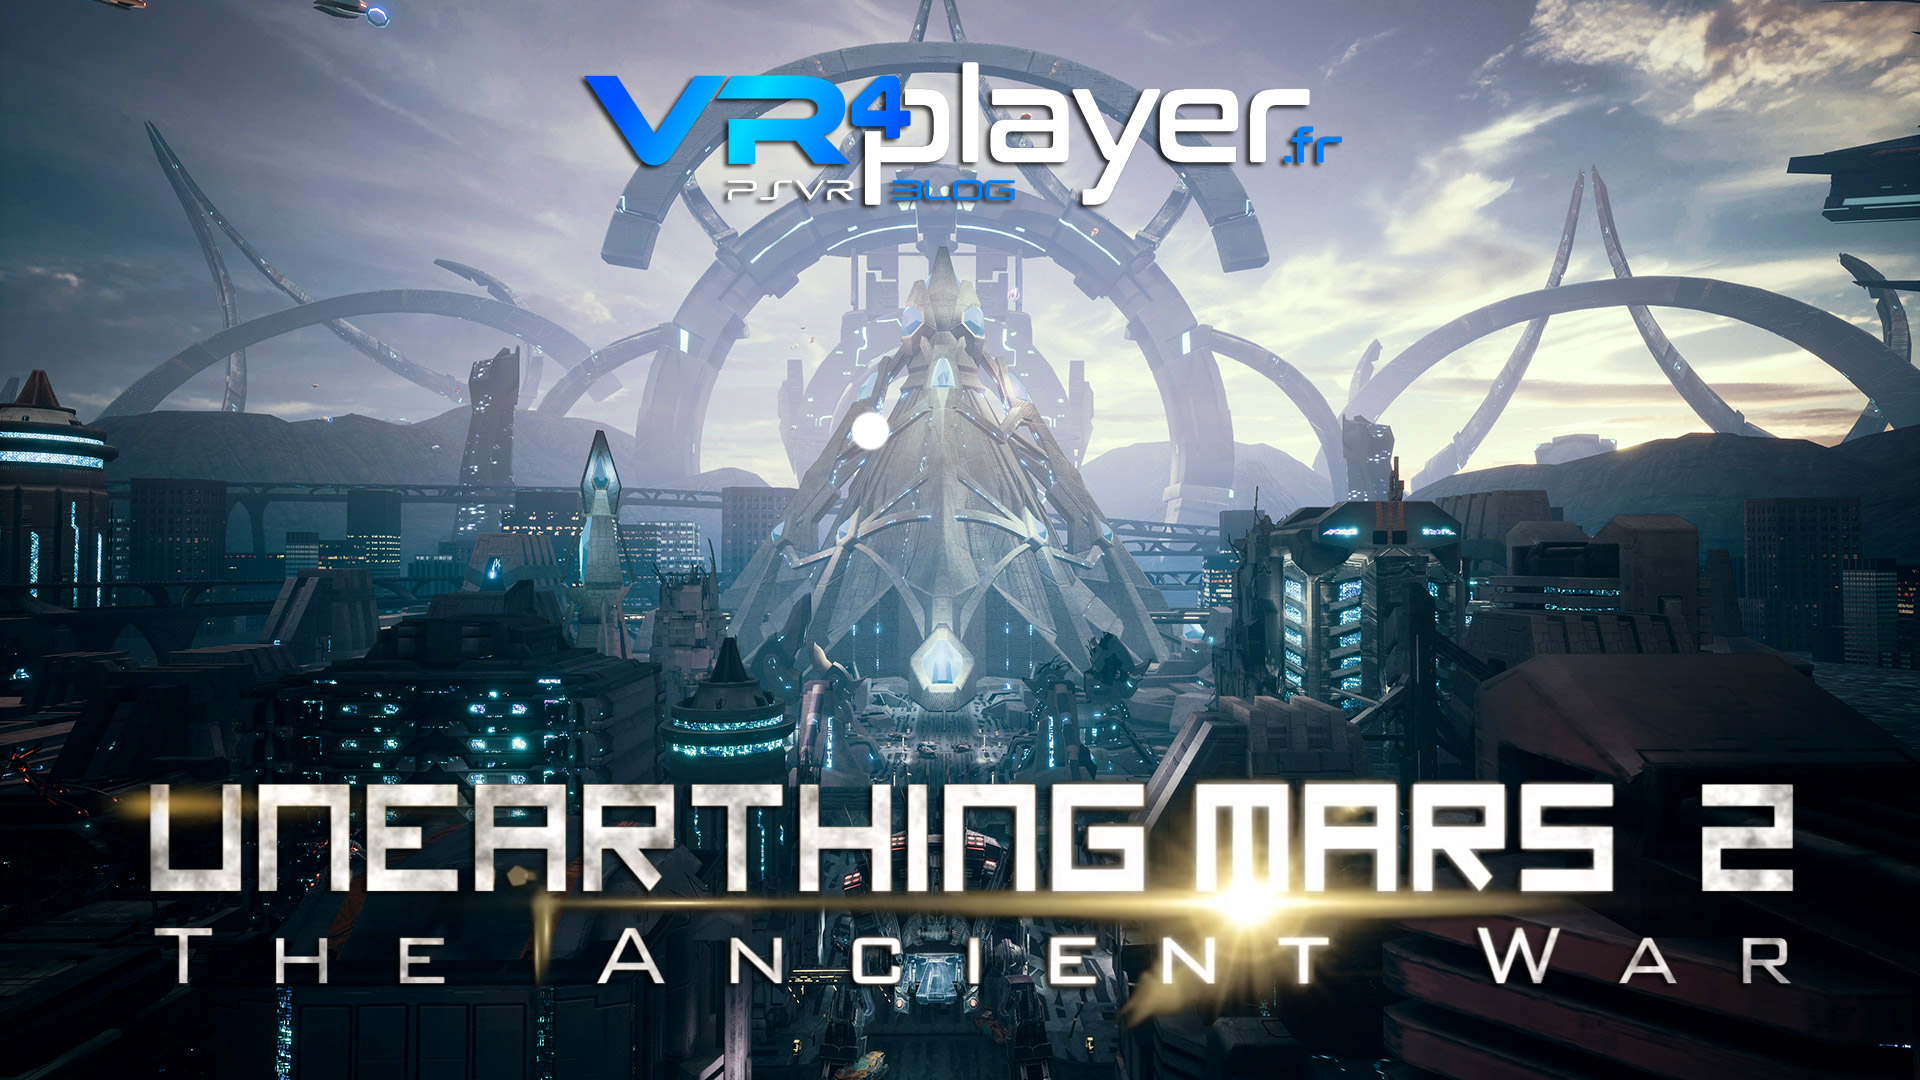 Unearthing Mars 2: The Ancient War sur PSVR en septembre vr4player.fr